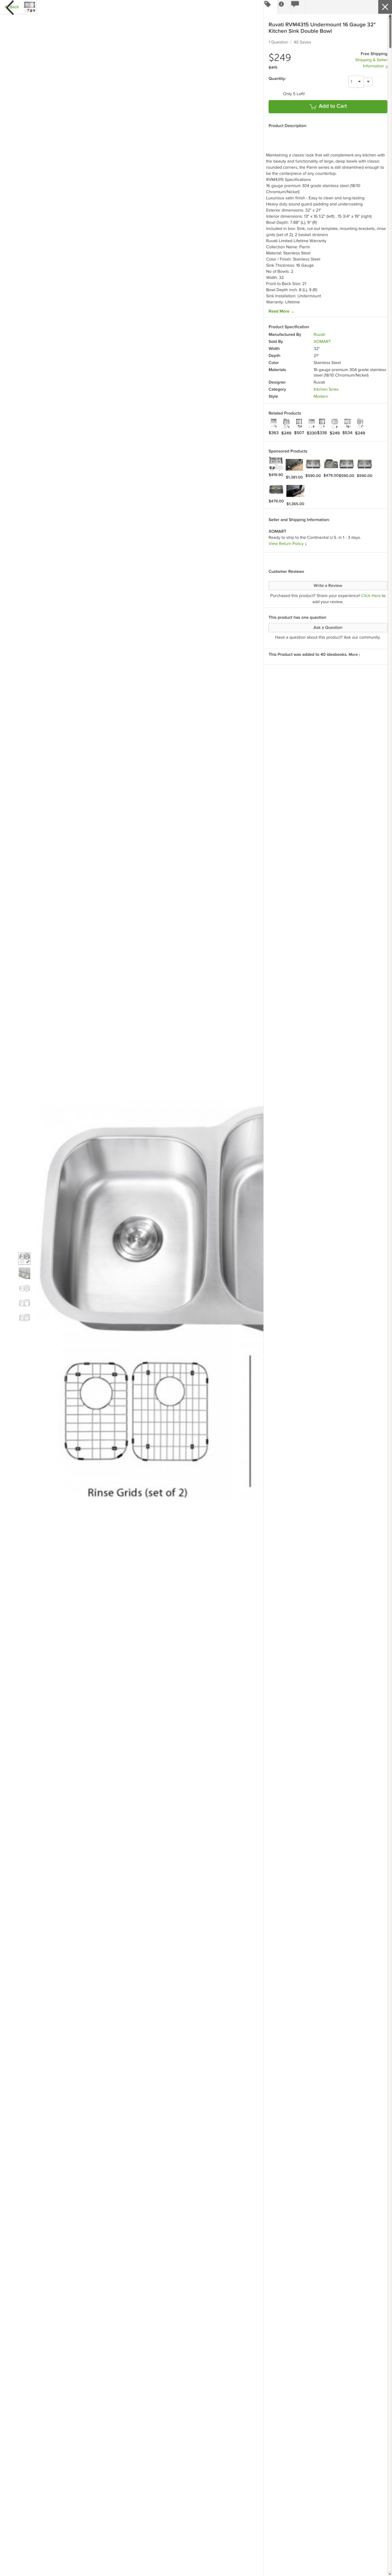 Website'http%3A%2F%2Fwww.houzz.com%2Fphotos%2F11143322%2FRuvati-RVM4315-Undermount-16-Gauge-32-Kitchen-Sink-Double-Bowl-modern-kitchen-sinks' snapped on Page2images!